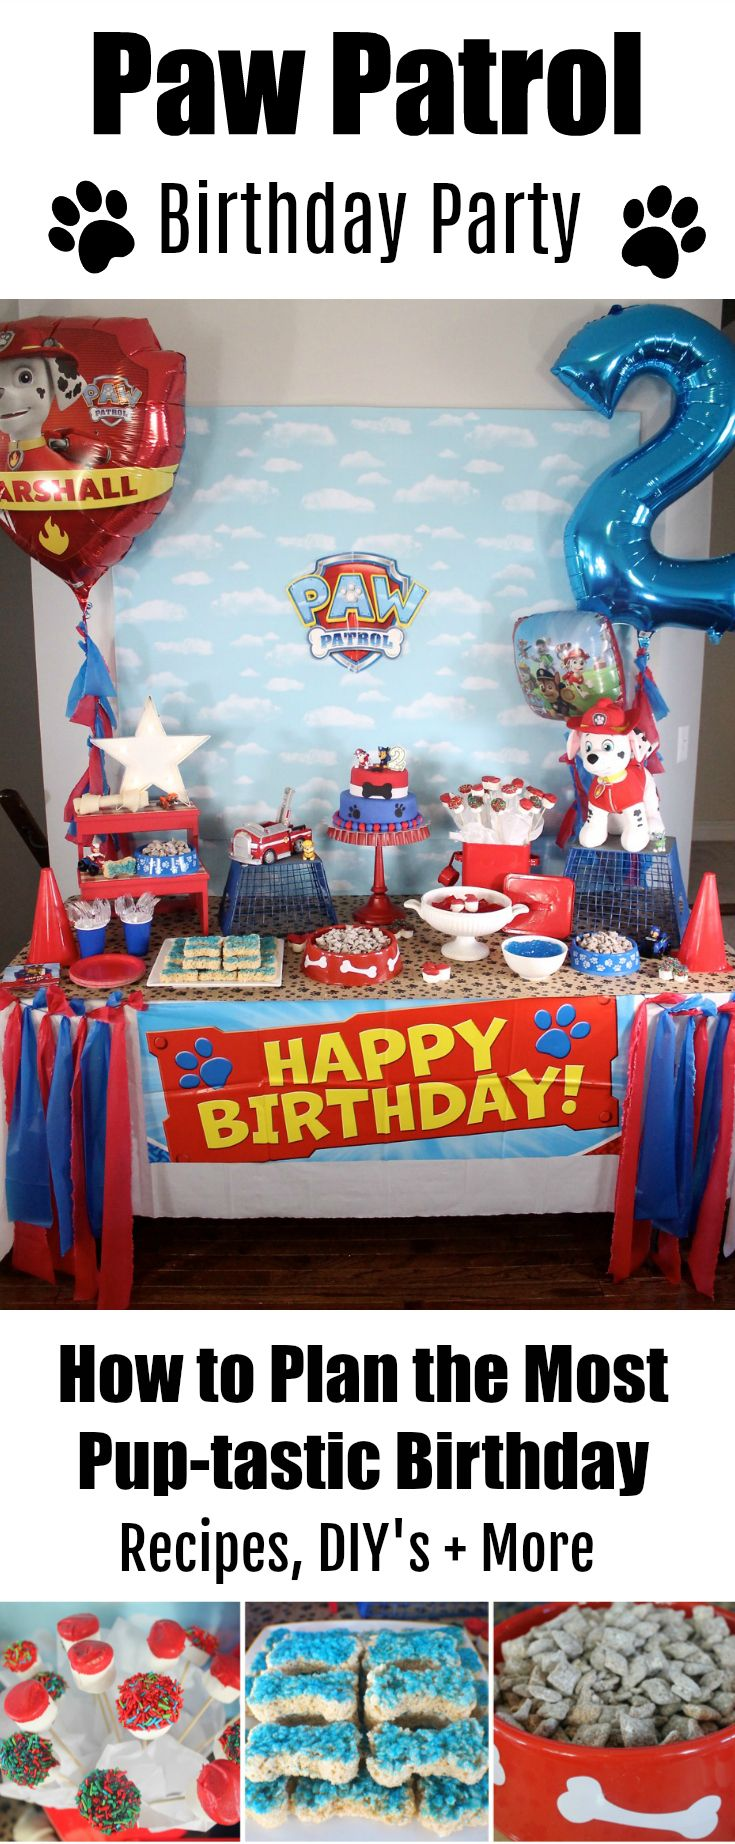 How to plan a PUP-TASTIC Paw Patrol Birthday Party! DIYs, food, decor and more! #kidsbirthday #pawpatrolparty